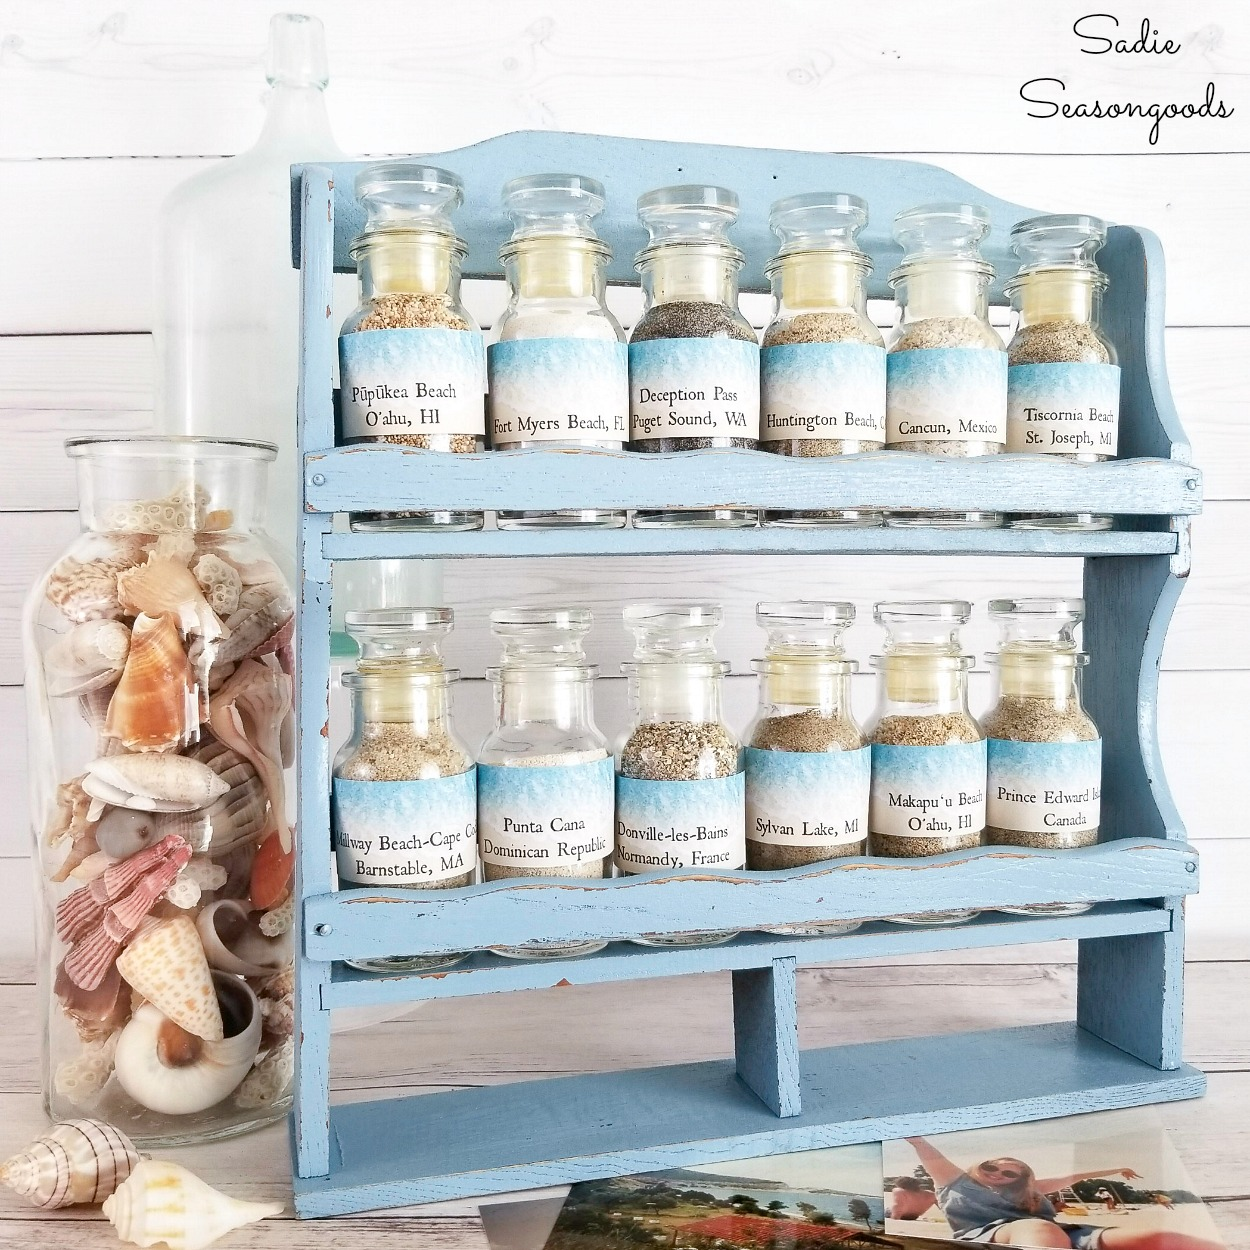 Sand Collection Display in a Vintage Spice Rack